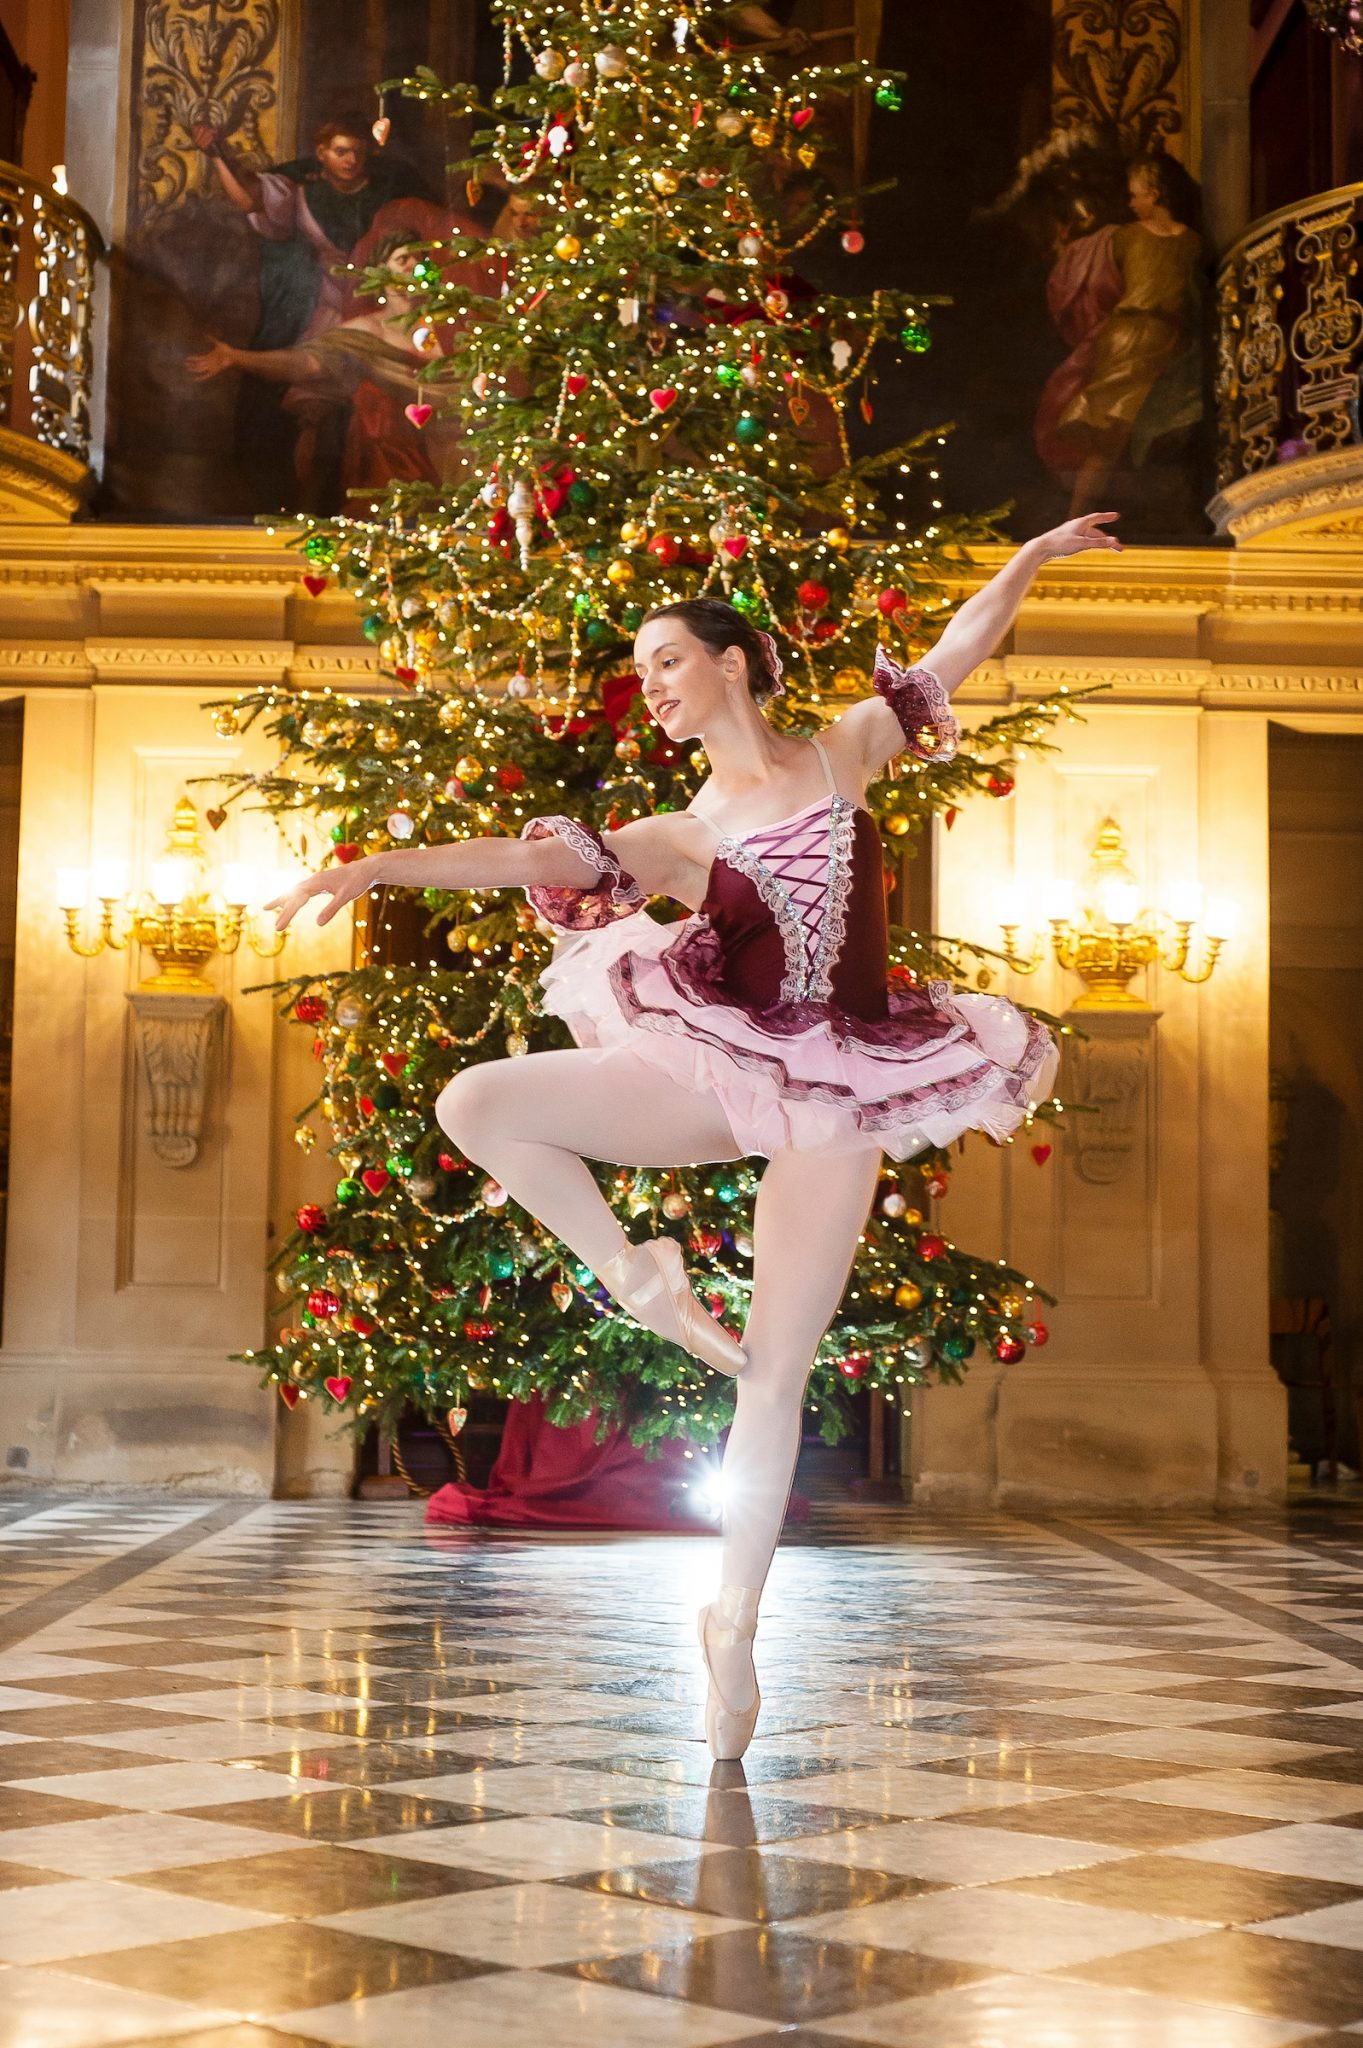 Ballerinas En Pointe with The Nutcracker at Chatsworth